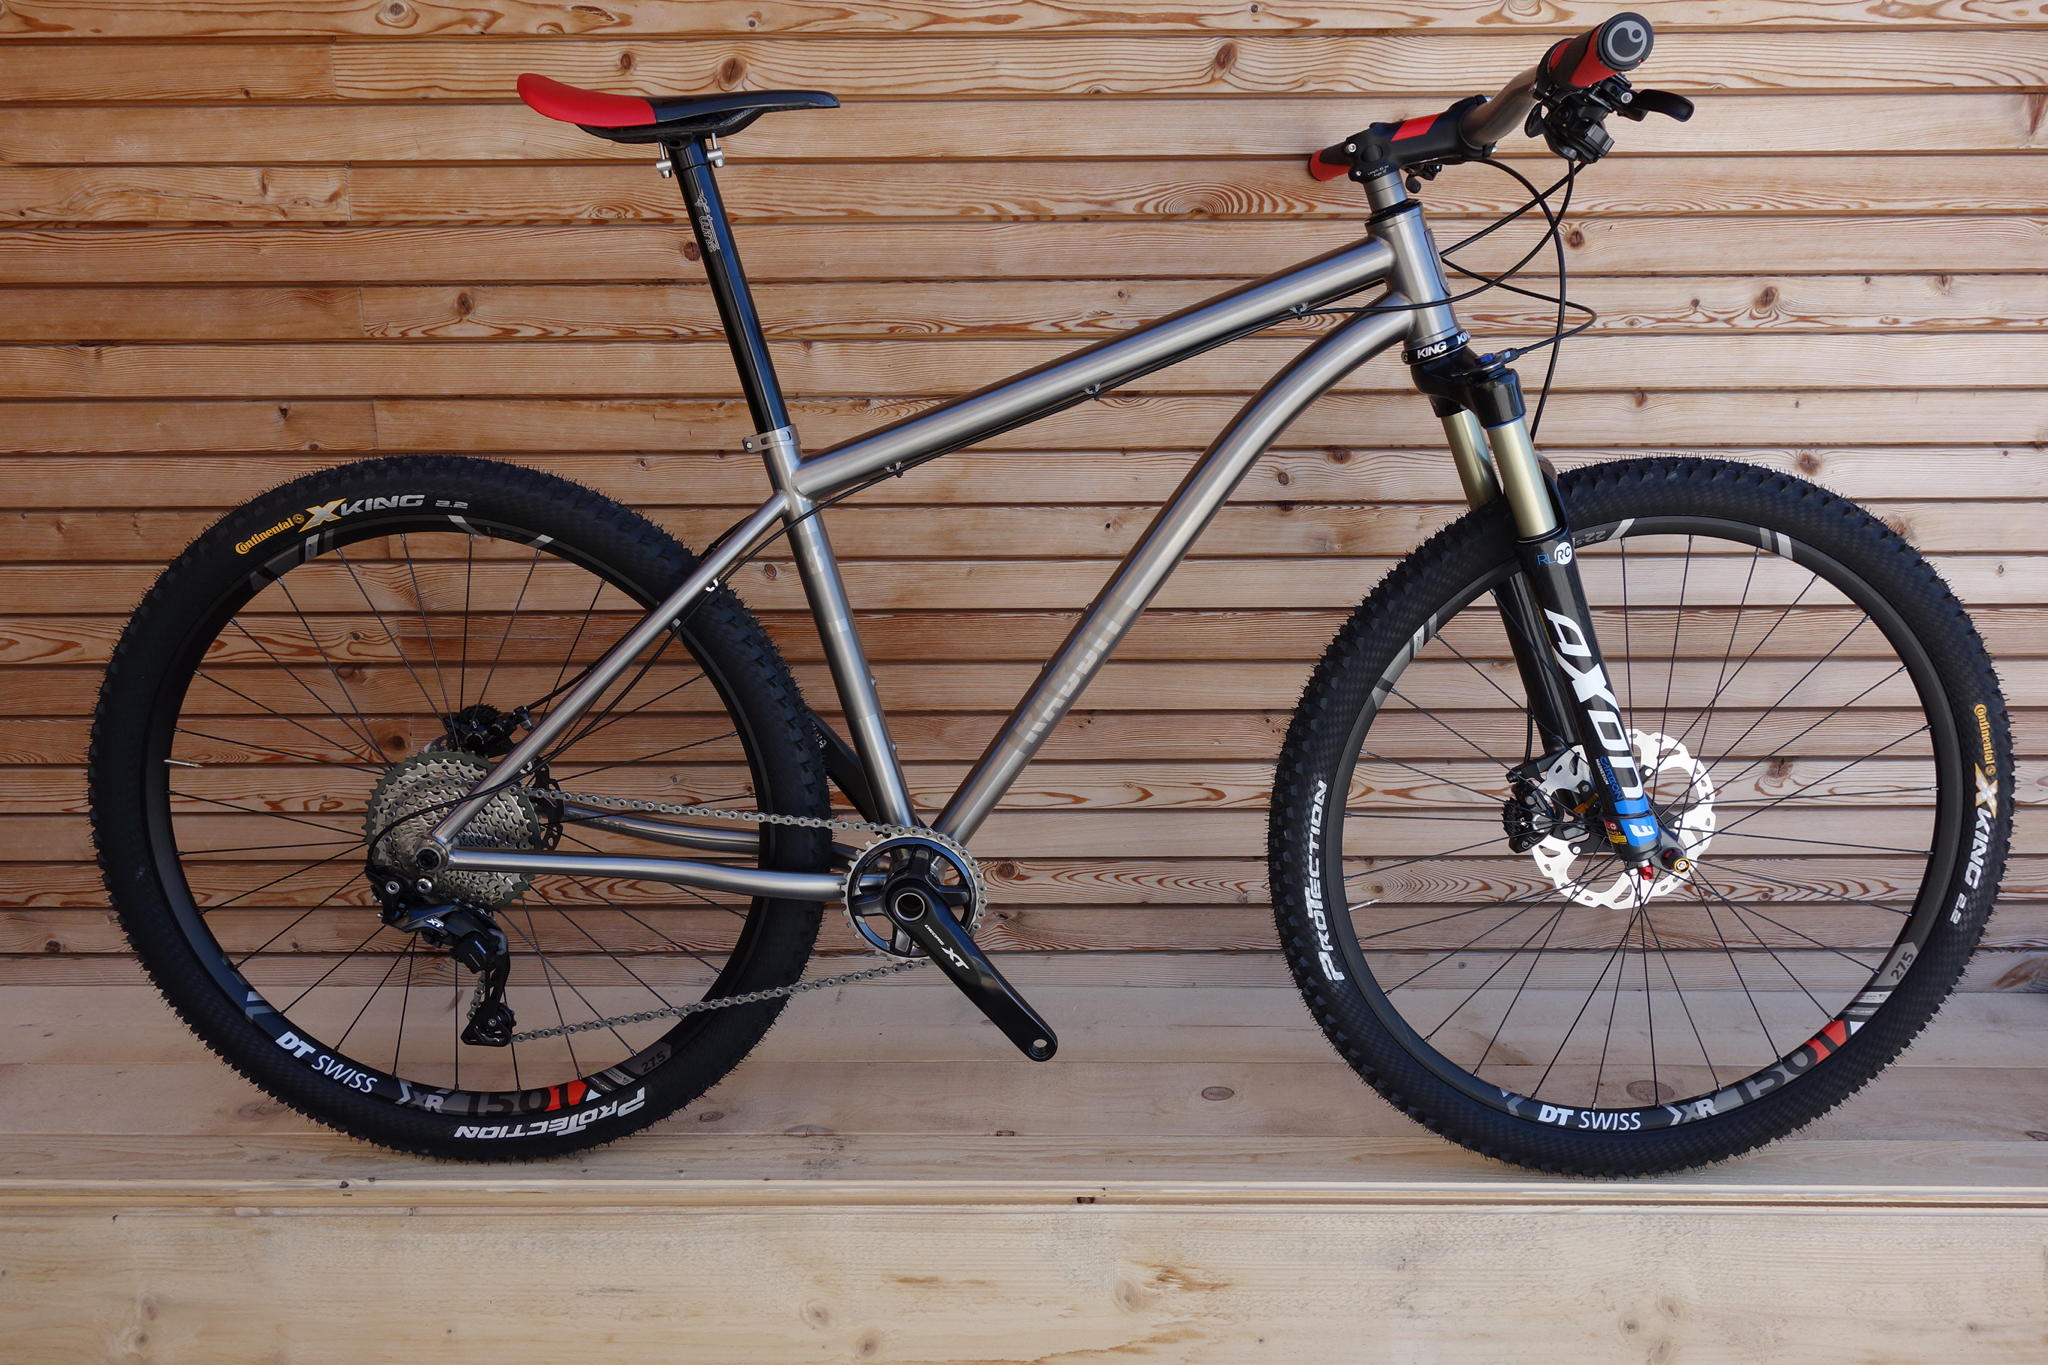 rabbit_cycles_titan_mtb_650b_classic_boost_dsc02716